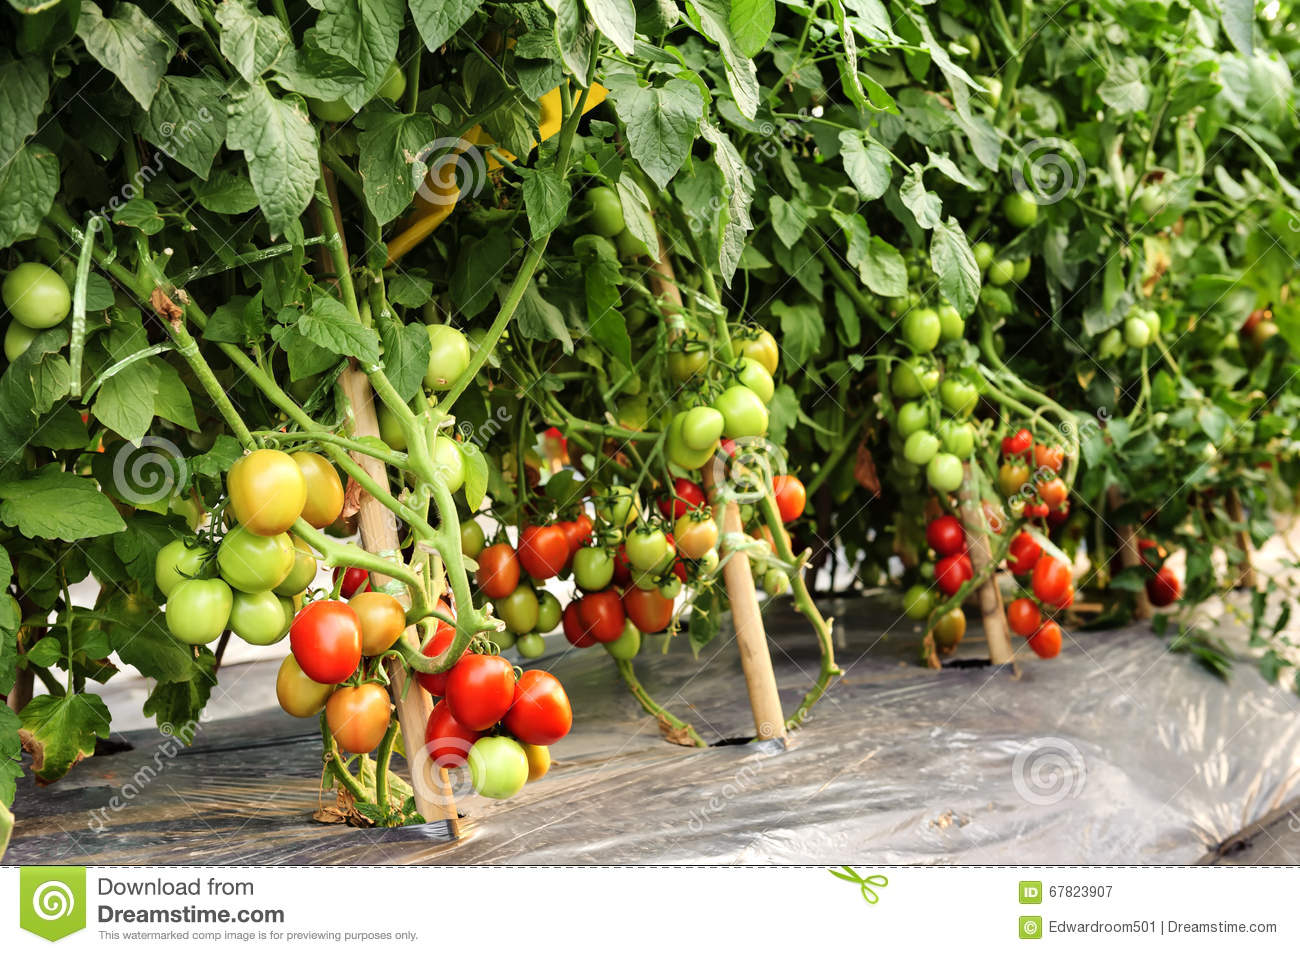 Cultivation Of Tomatoes 28 Images Growing Tomatoes Tomato Growing Tips Cultivation Of